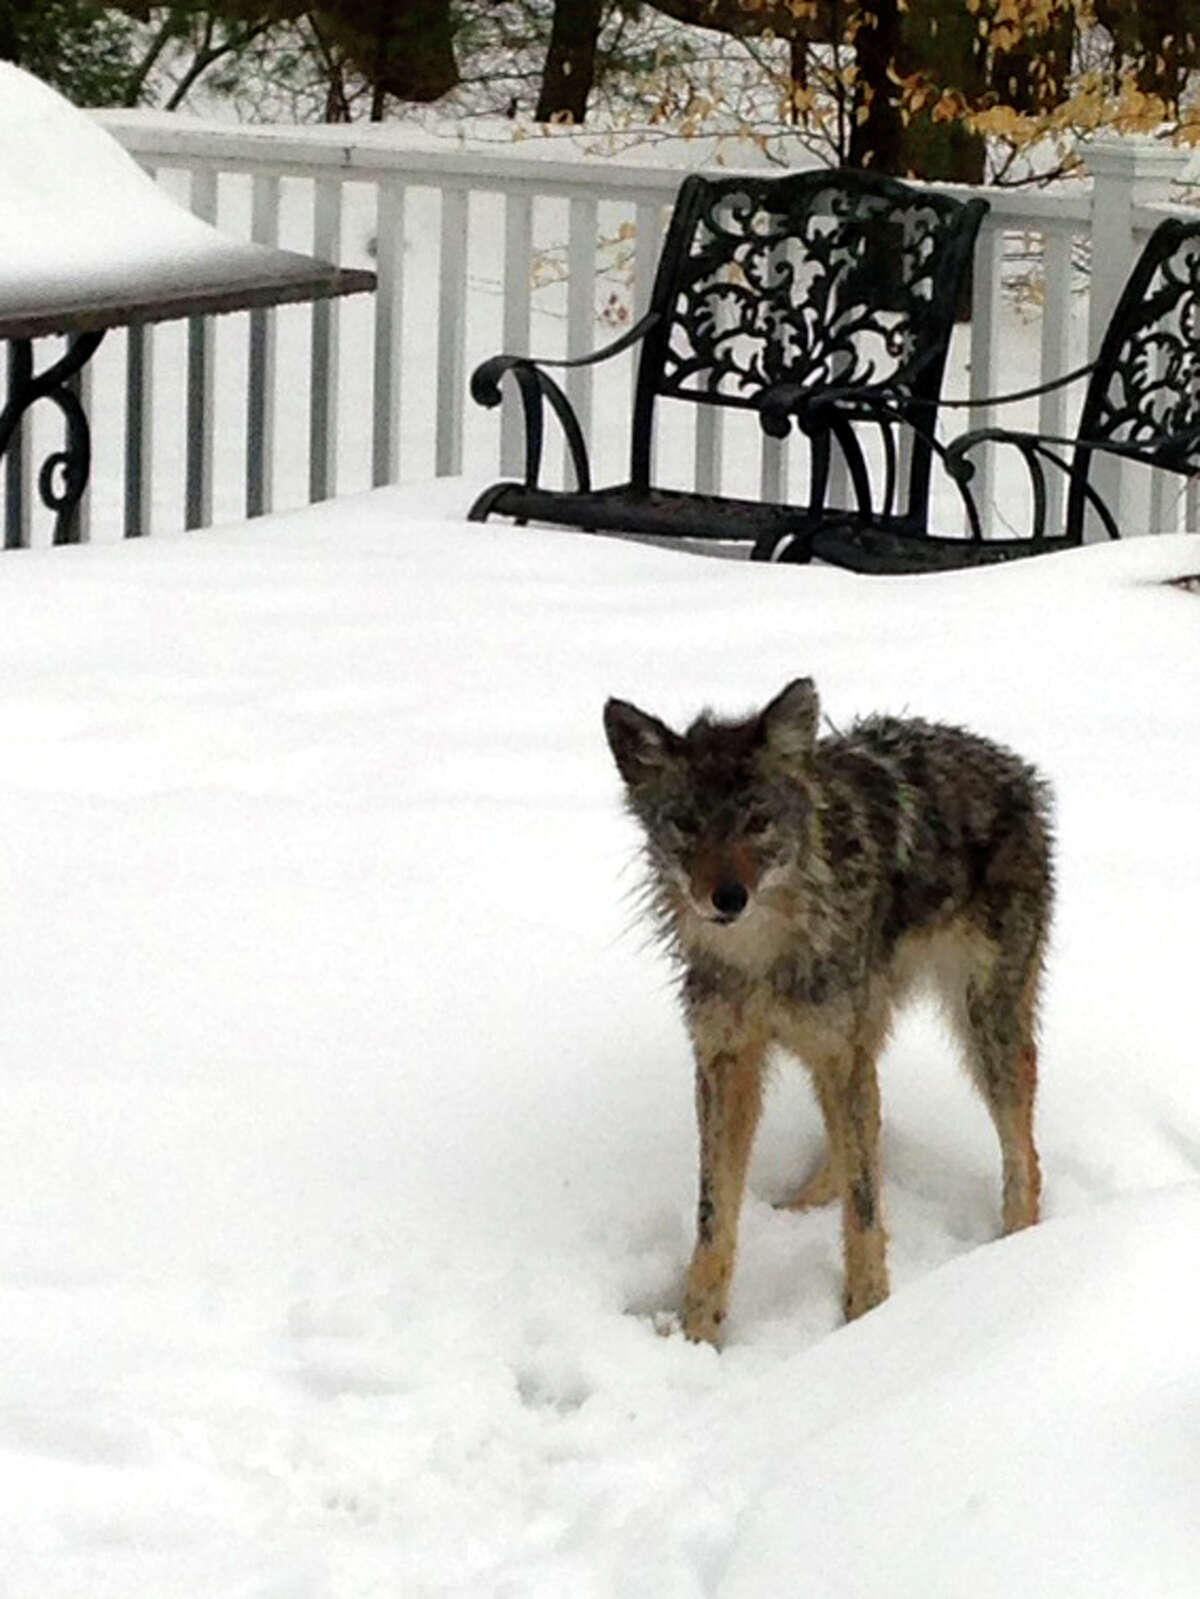 Back in March of 2015 a North Stamford resident snapped a picture of this coyote after it chased her dog inside. A mangy coyote was spotted in the area of Newfield Elementary School Wednesday morning, which kept kids inside for the day.